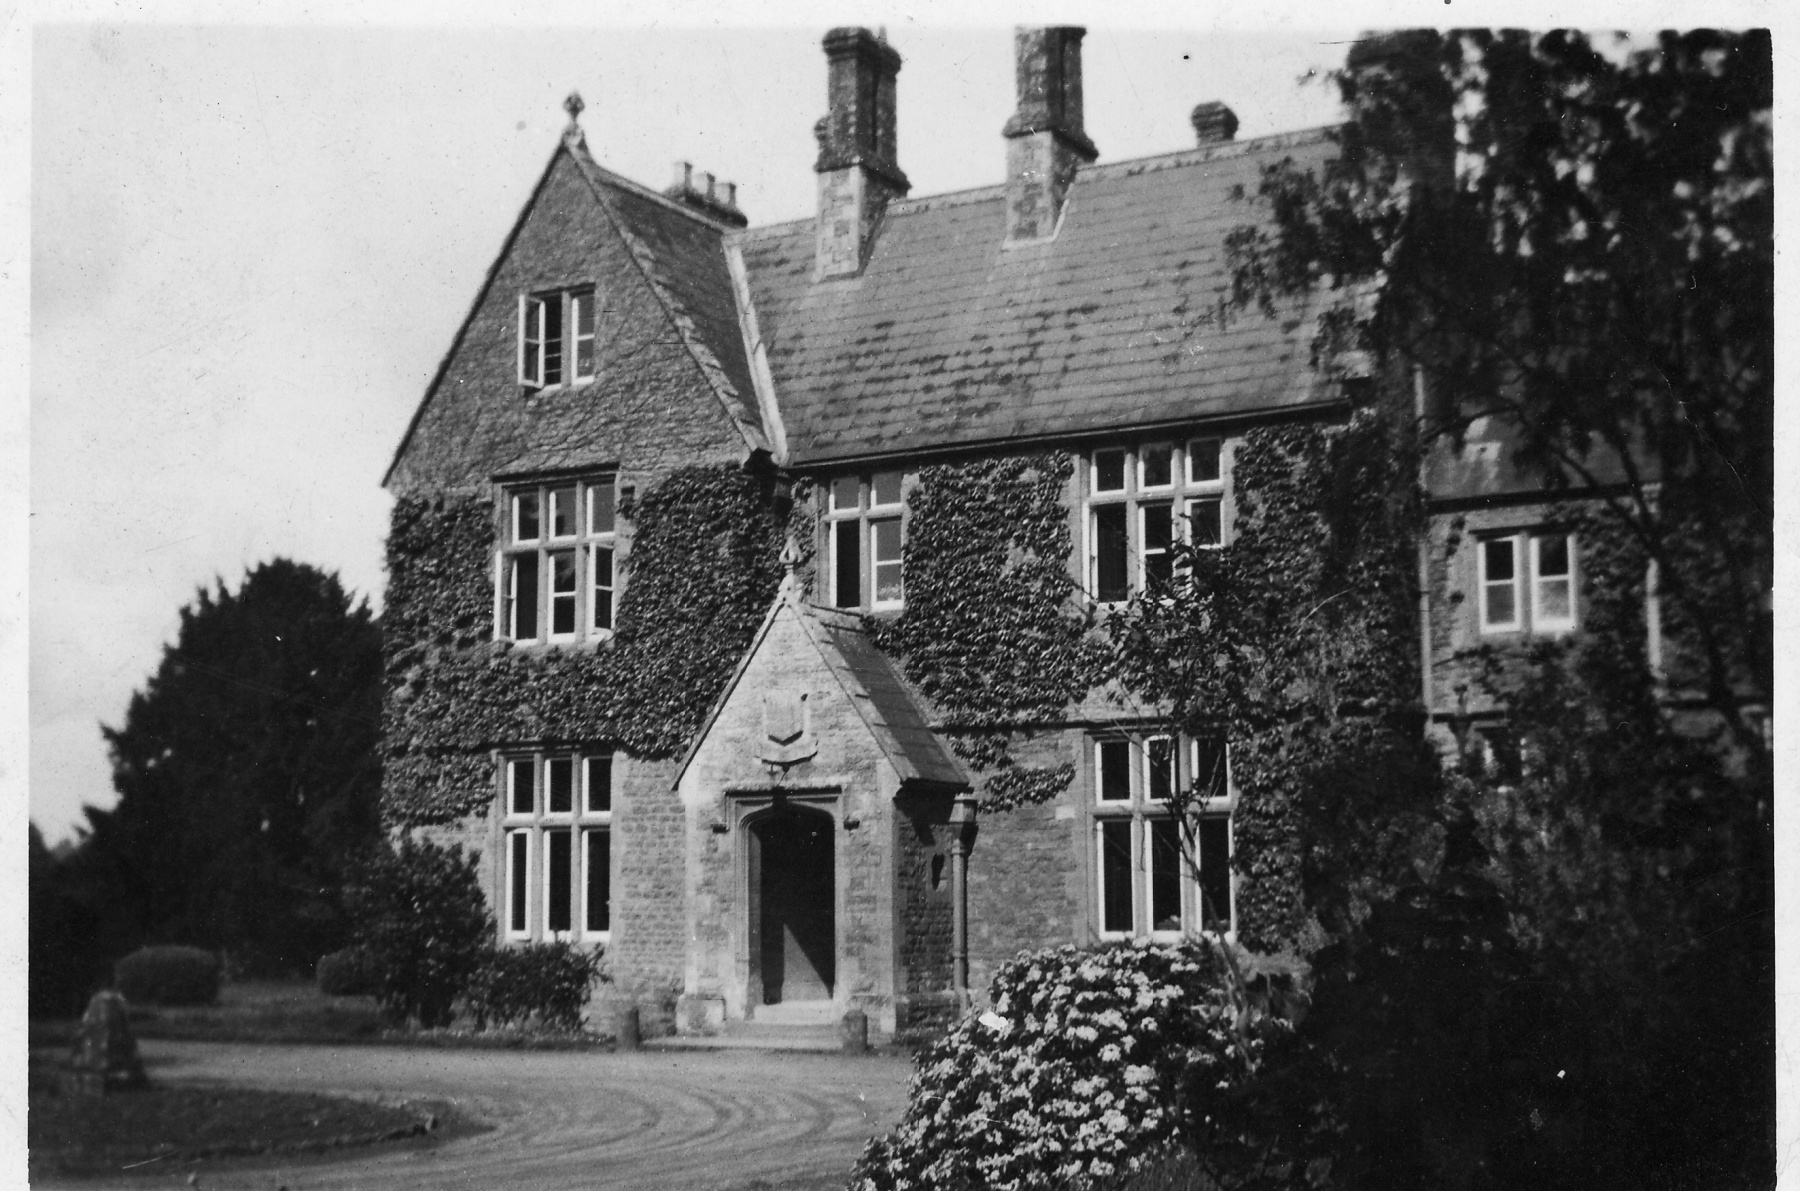 1942. The Manor Westcote Barton Oxon. W.L.U Hostel.